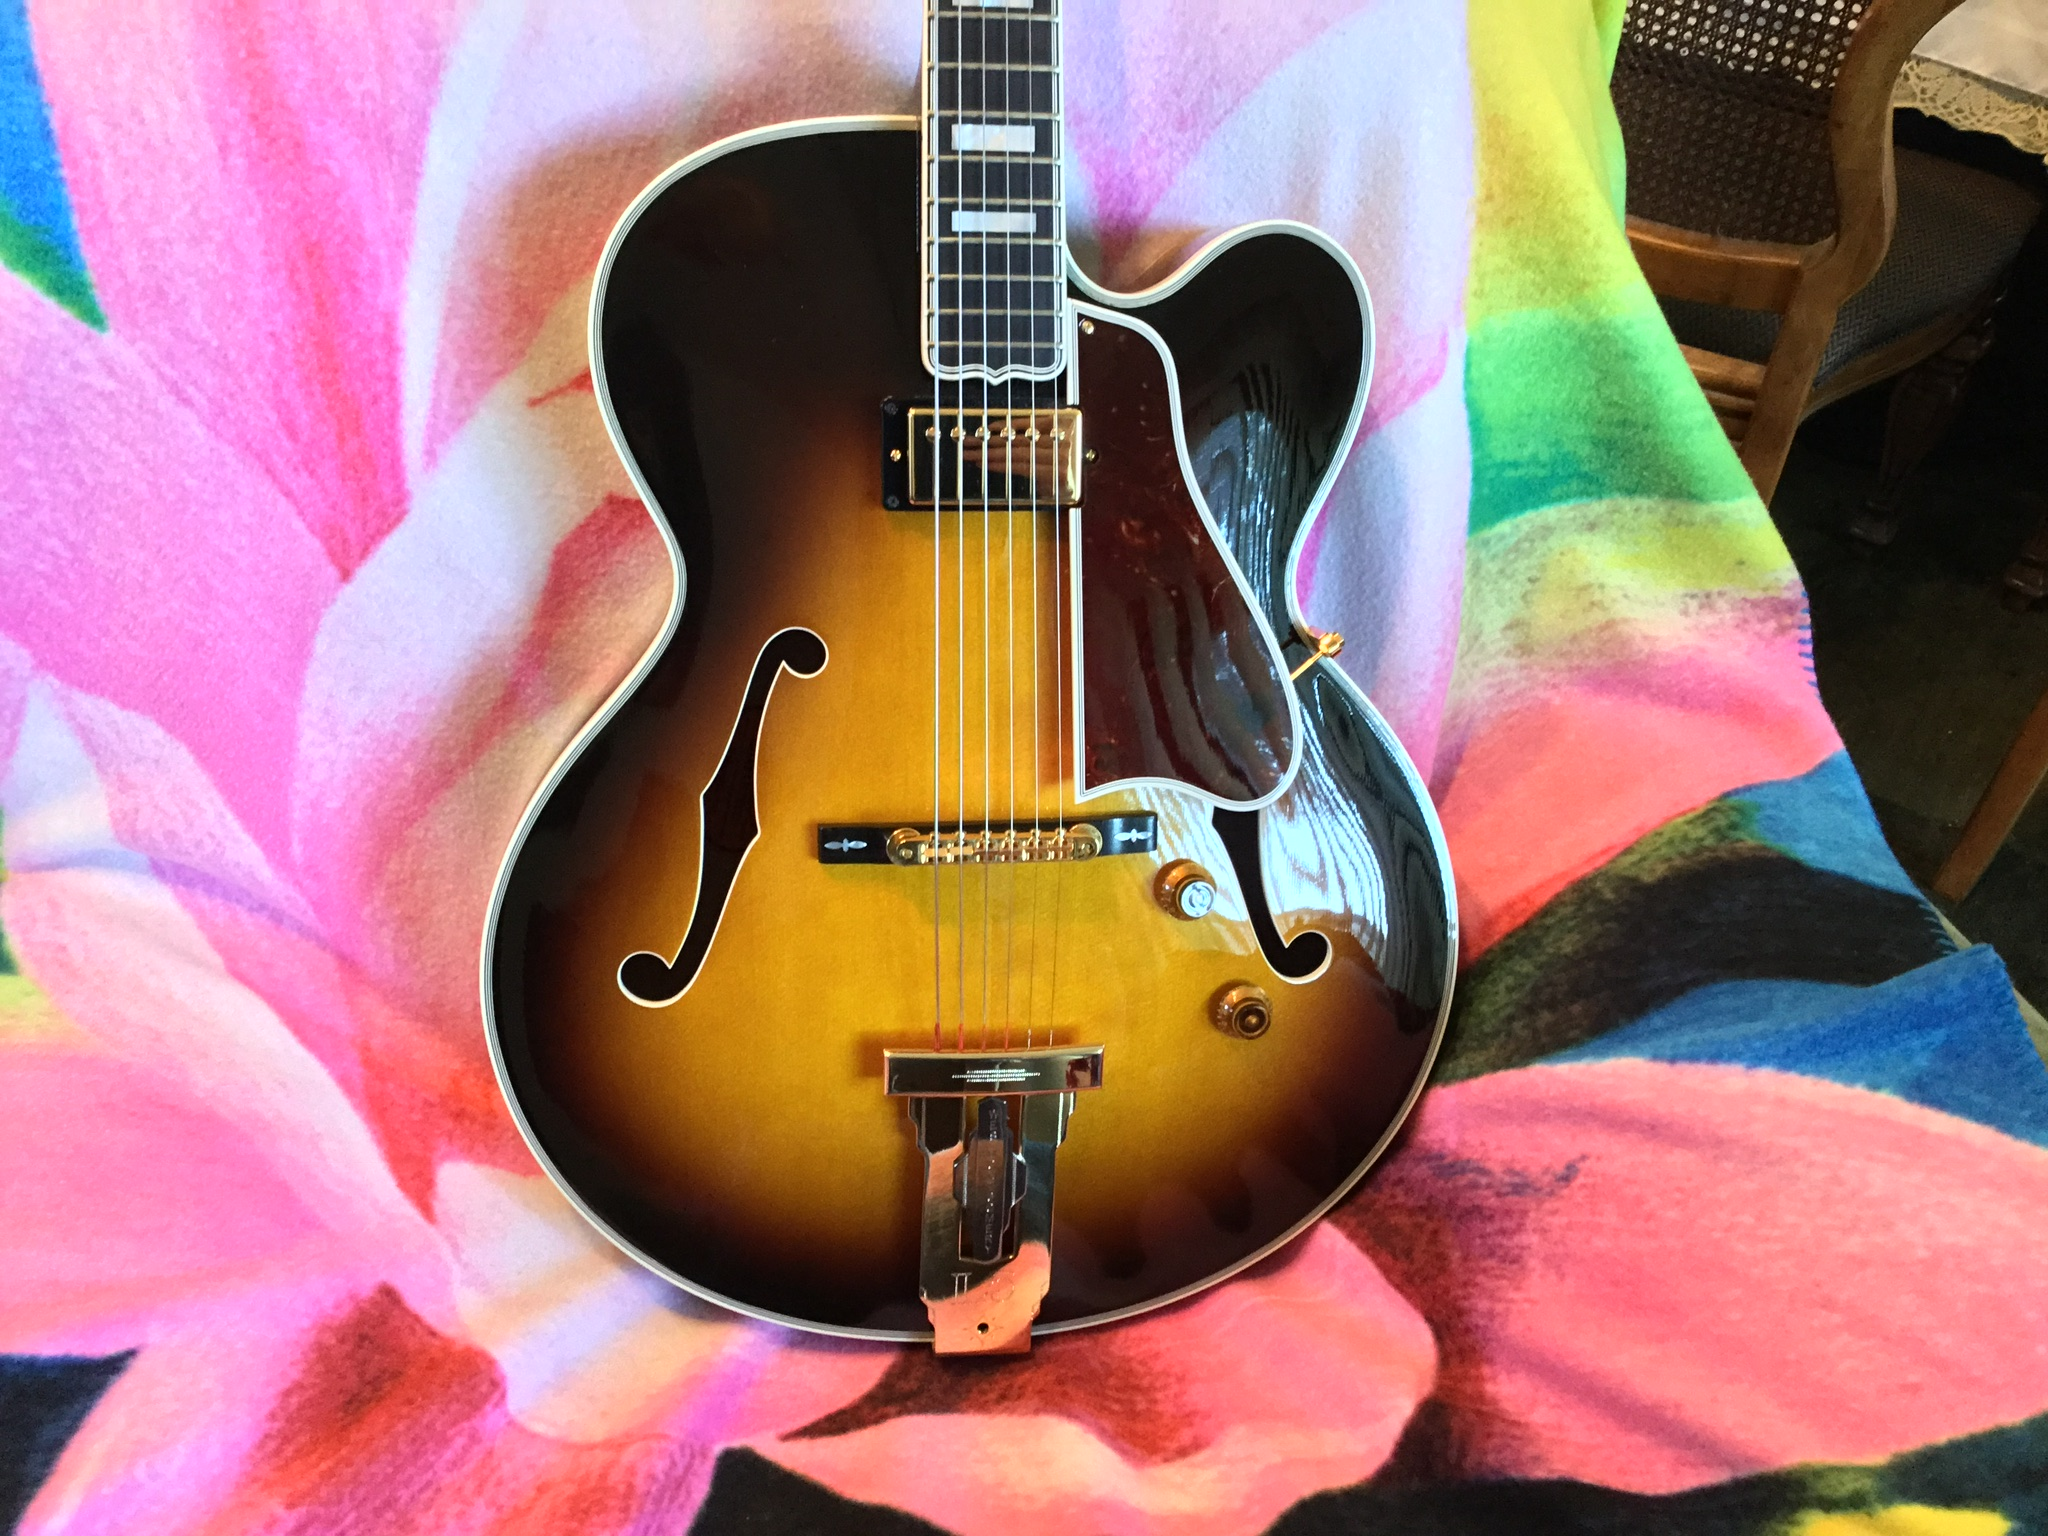 RIP Gibson Archtop guitar-13be6ac8-b937-4543-8d4f-1050173a0745-jpeg